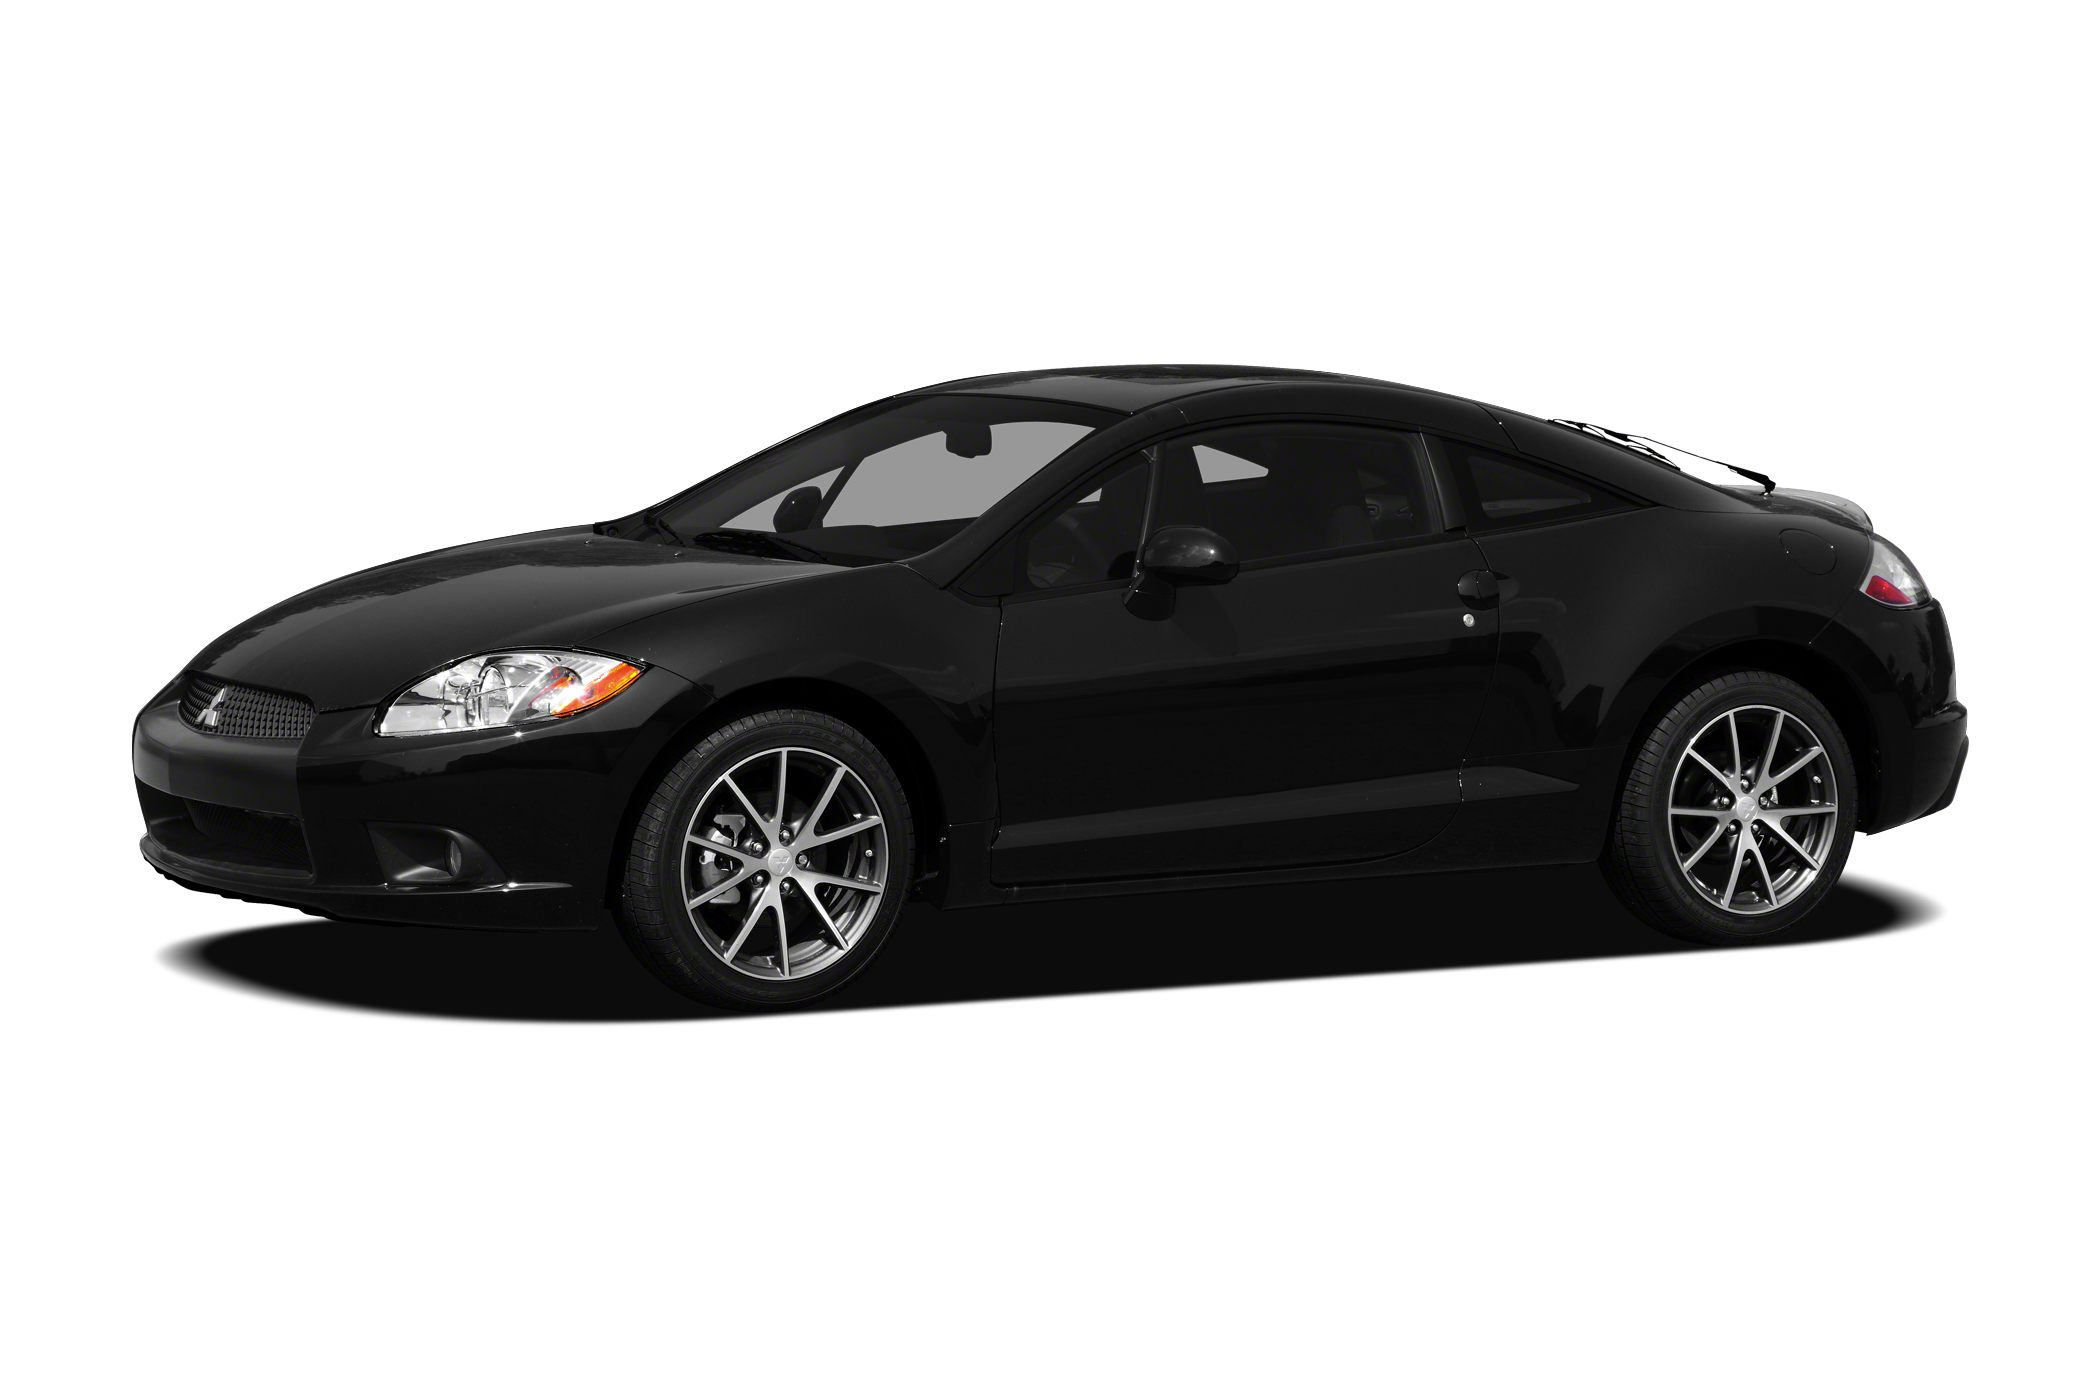 2012 mitsubishi eclipse gs sport for sale vin 4a37l2ef6ce